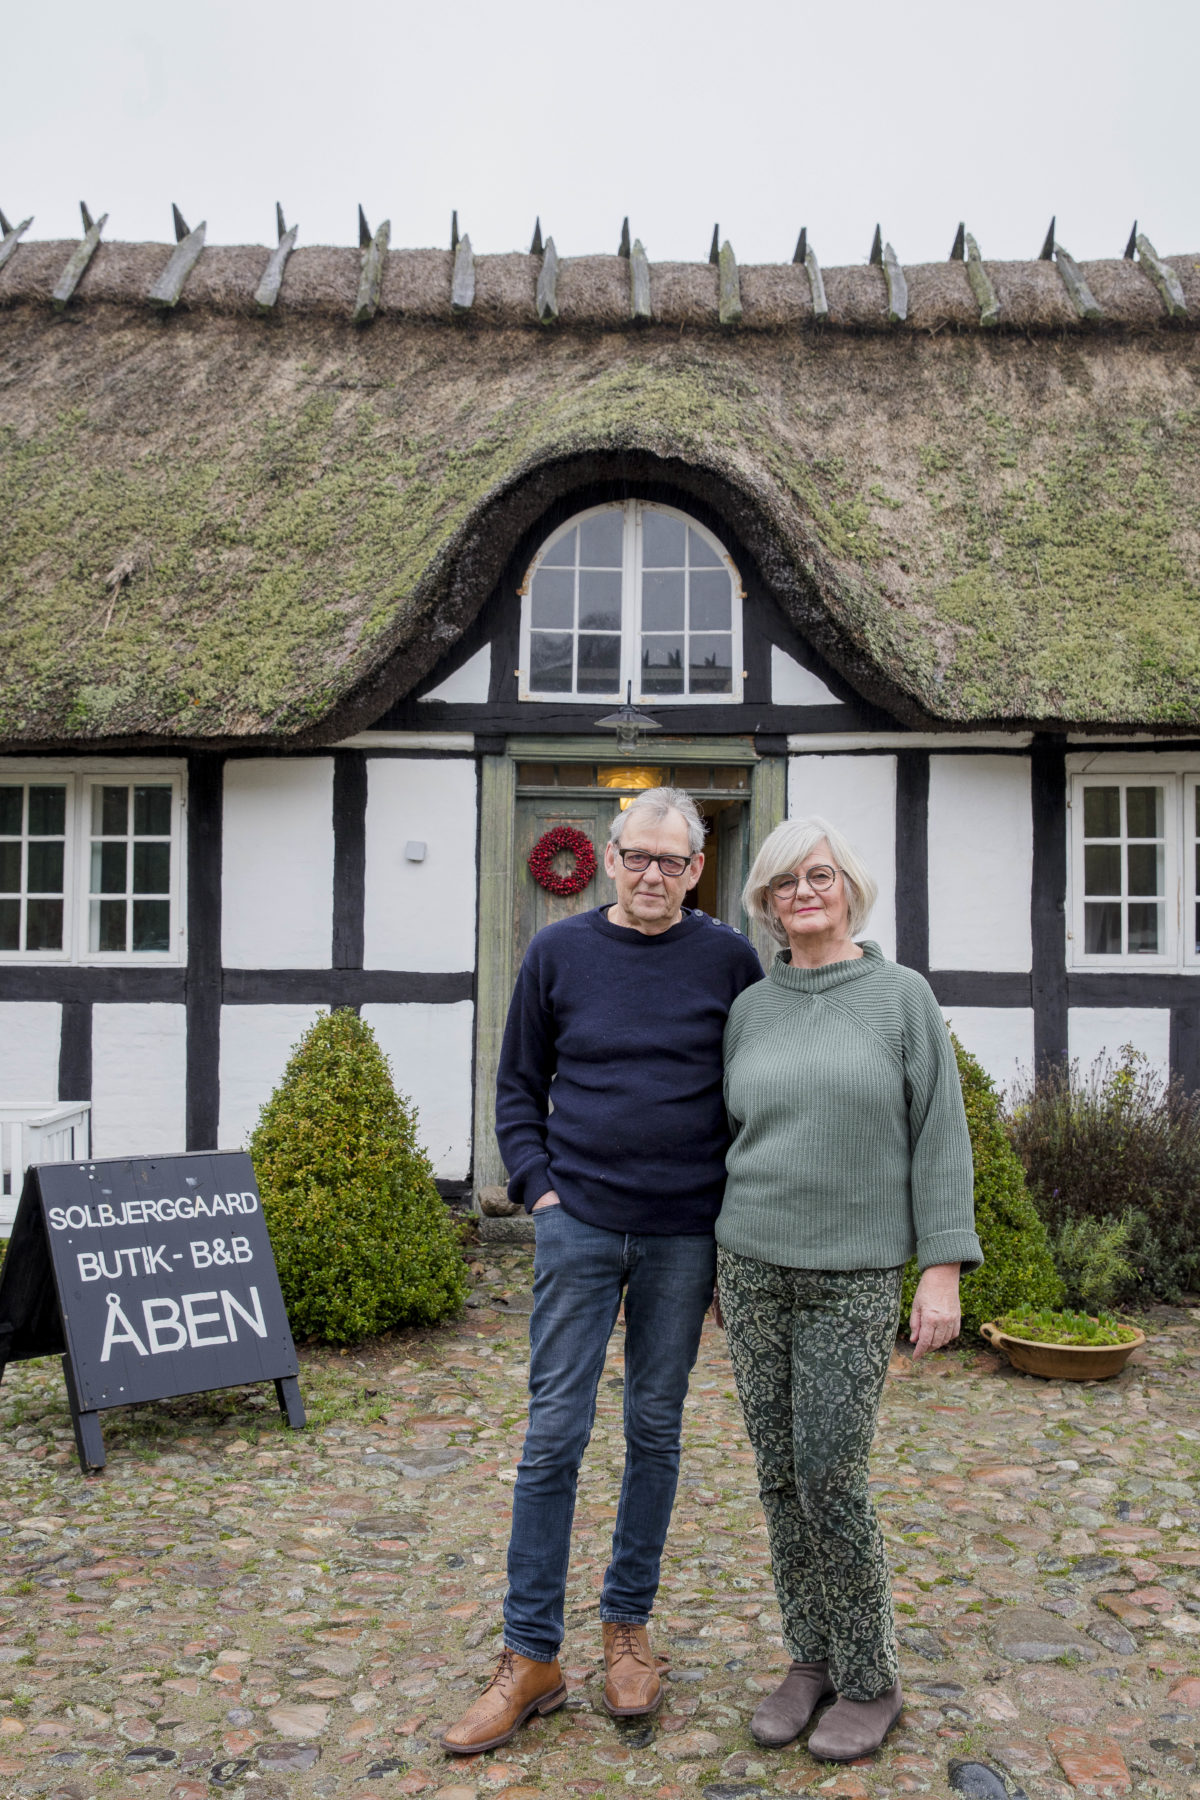 LAURA JOHANNE BANG OG PETER GABEL-JENSEN, 69 og 70 år, bed and breakfastværter